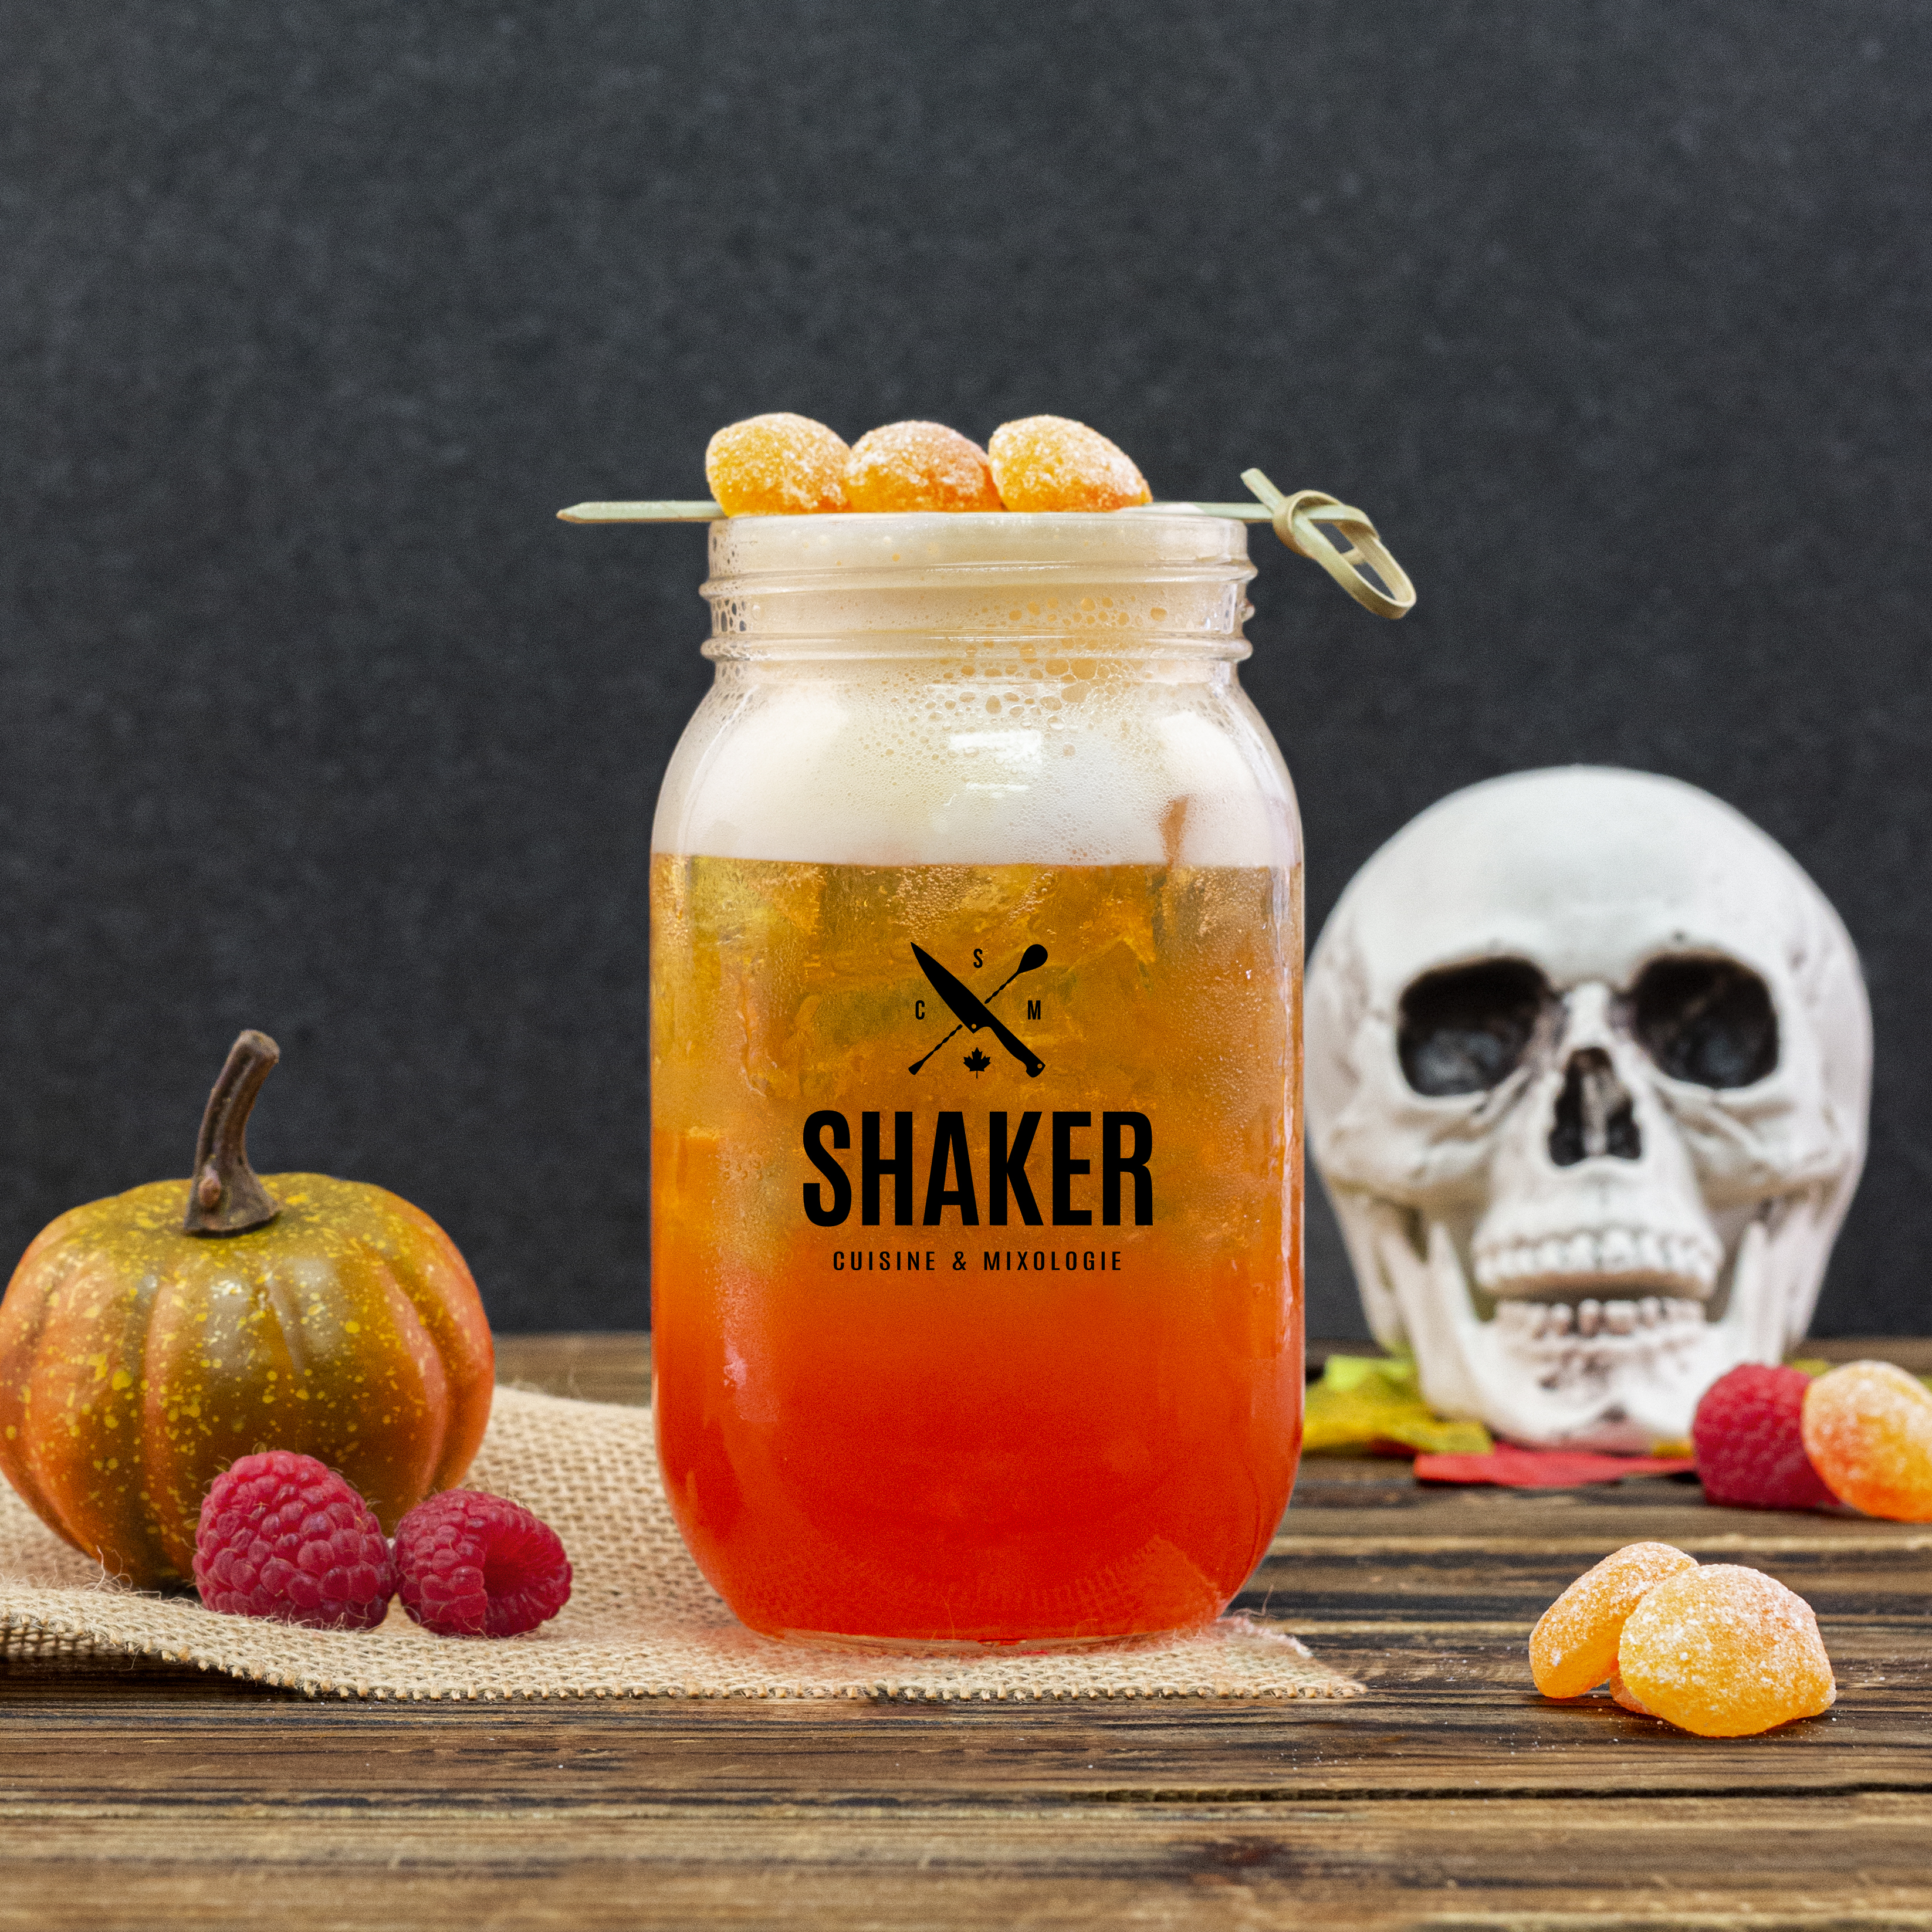 https://www.shakercuisineetmixologie.com/files/2019/10/Trick-or-Treat-INSTAGRAM.jpg